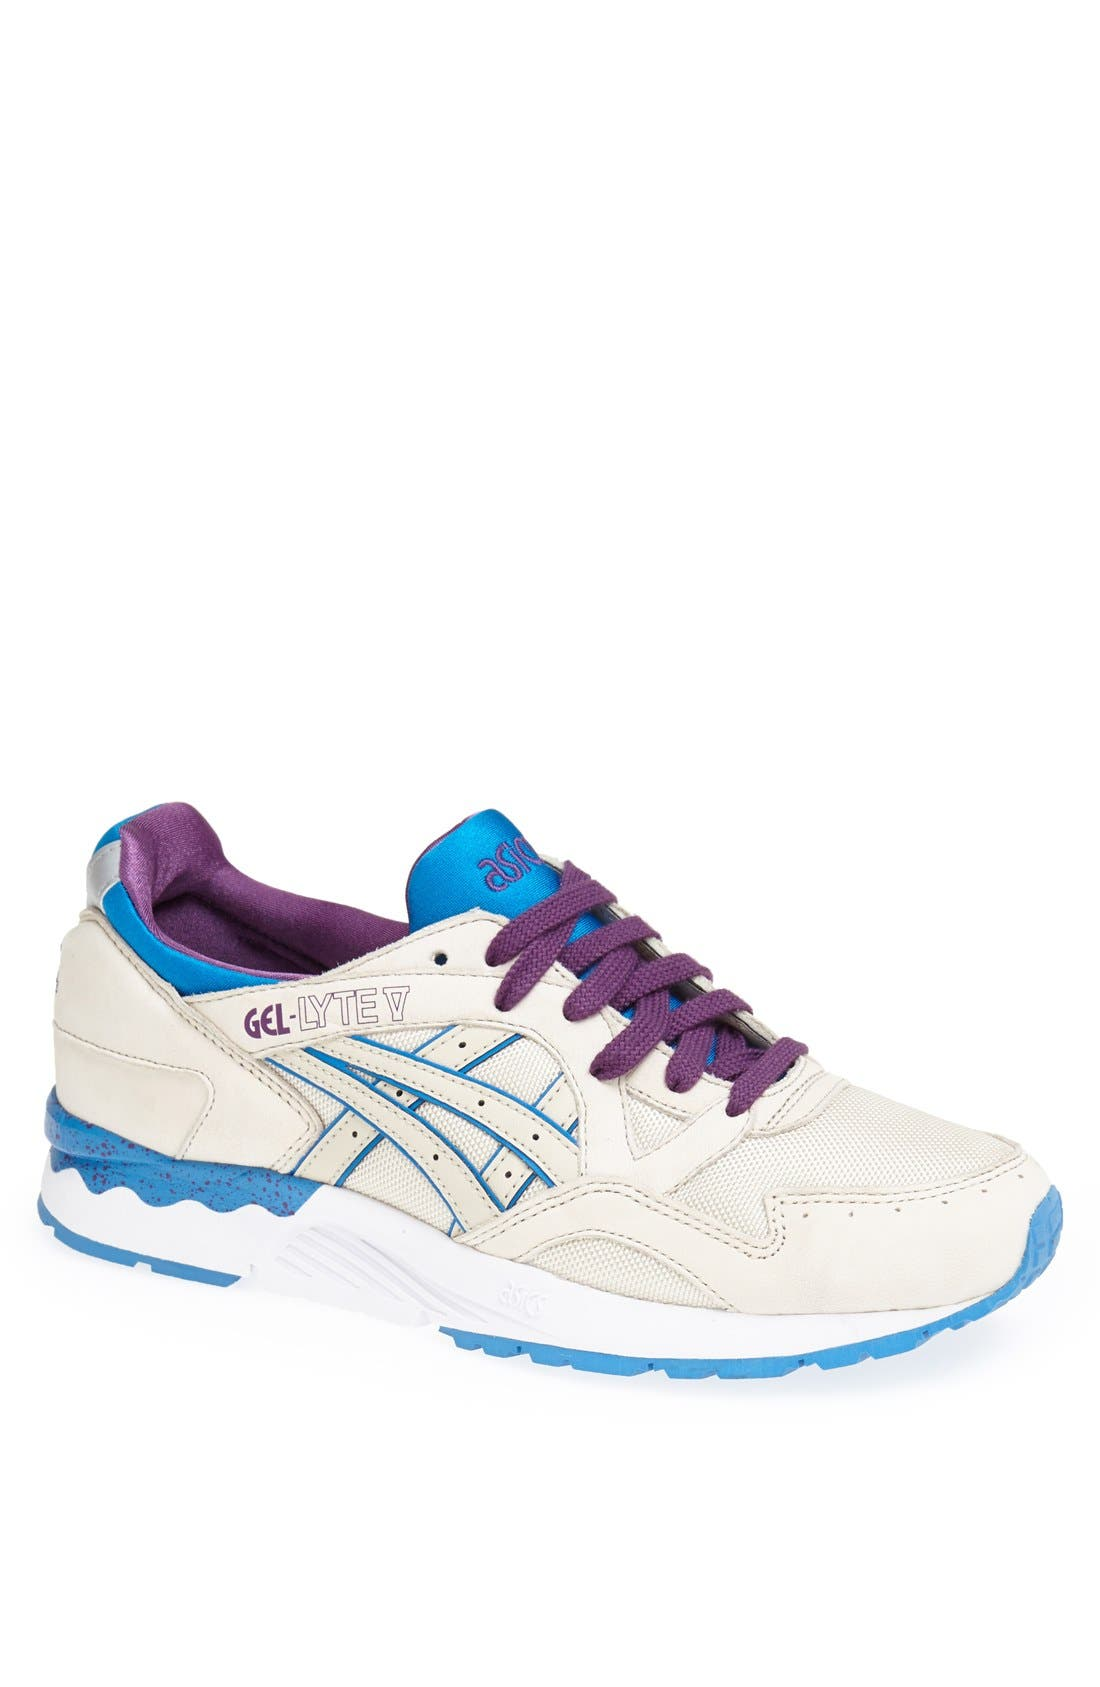 Alternate Image 1 Selected - ASICS® 'GEL-Lyte V' Sneaker (Men)